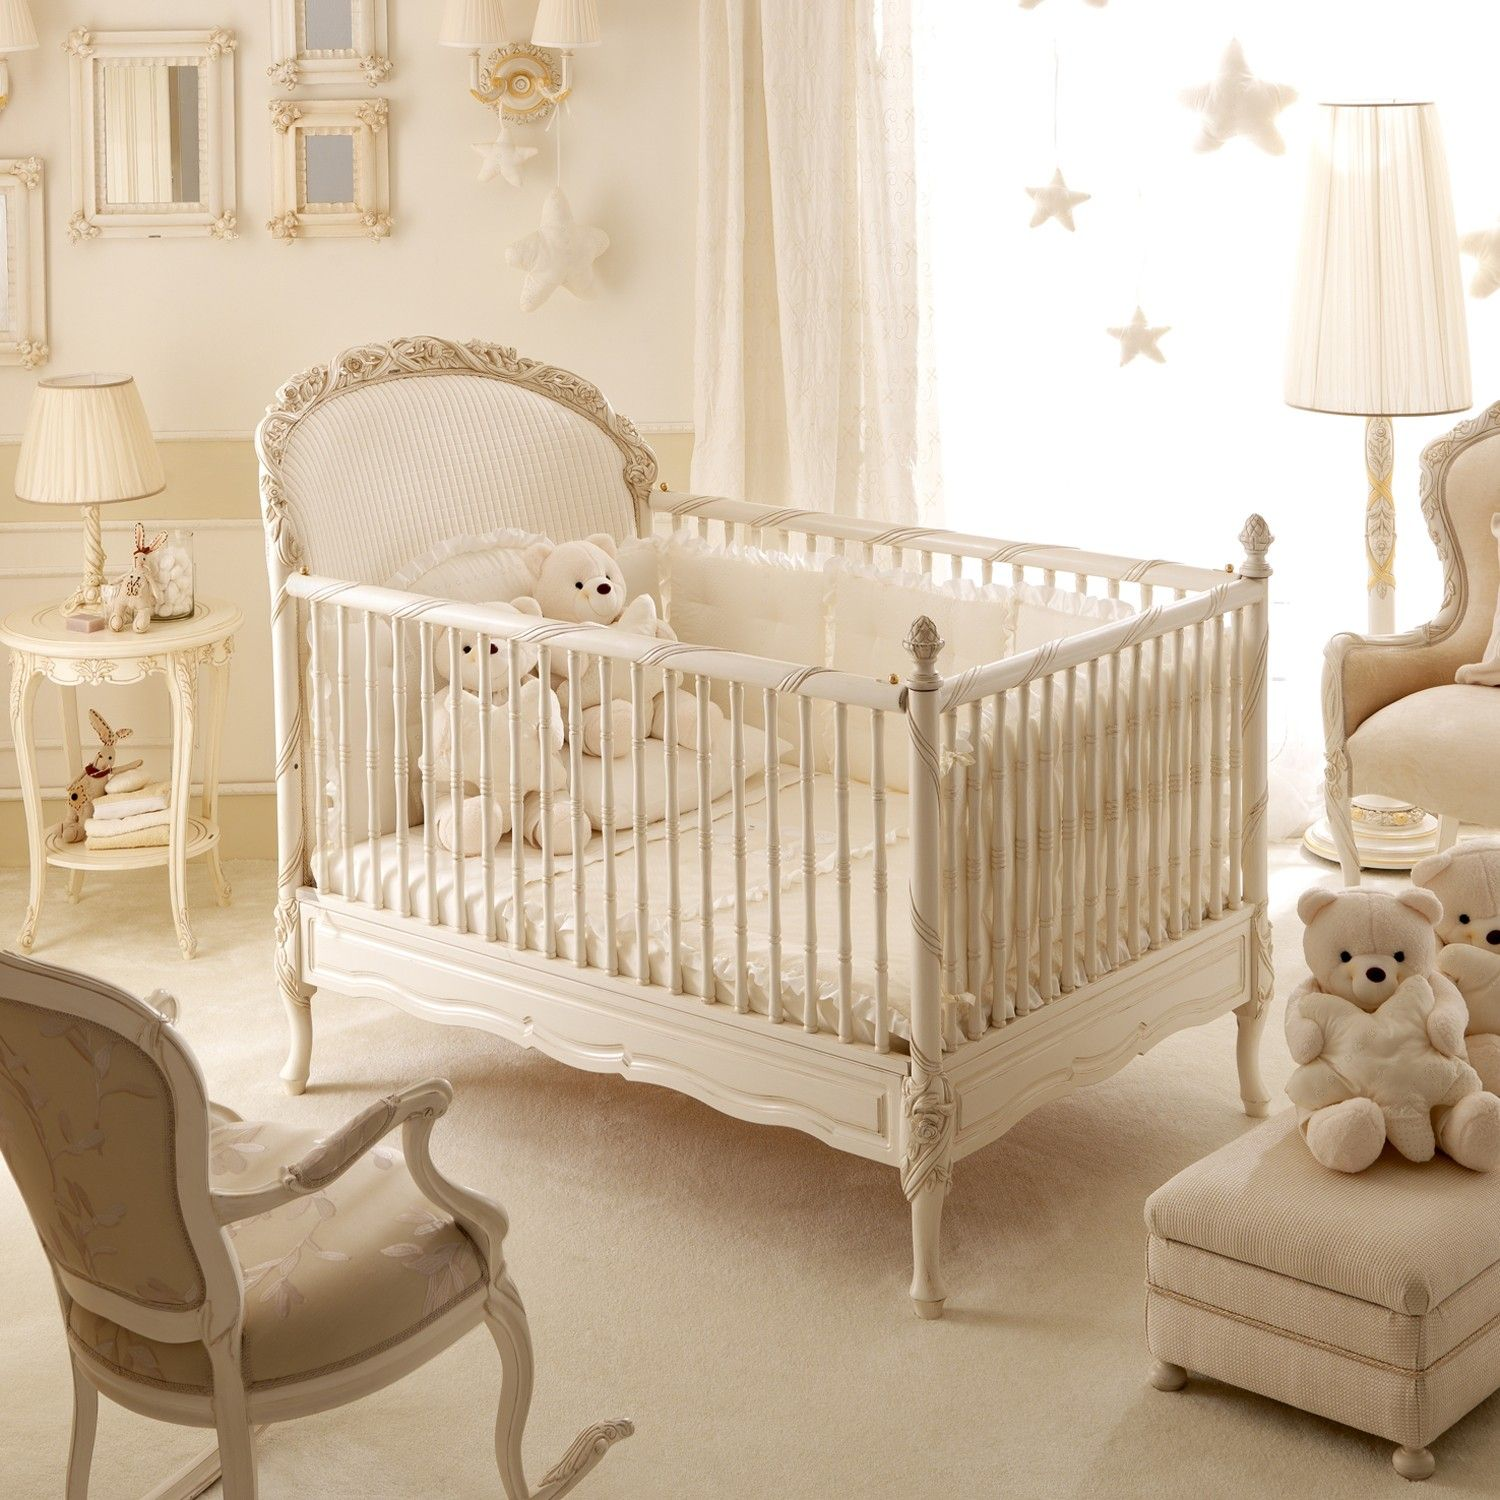 Colorful And Simple Baby Bedroom Furniture Sets — Alert Interior